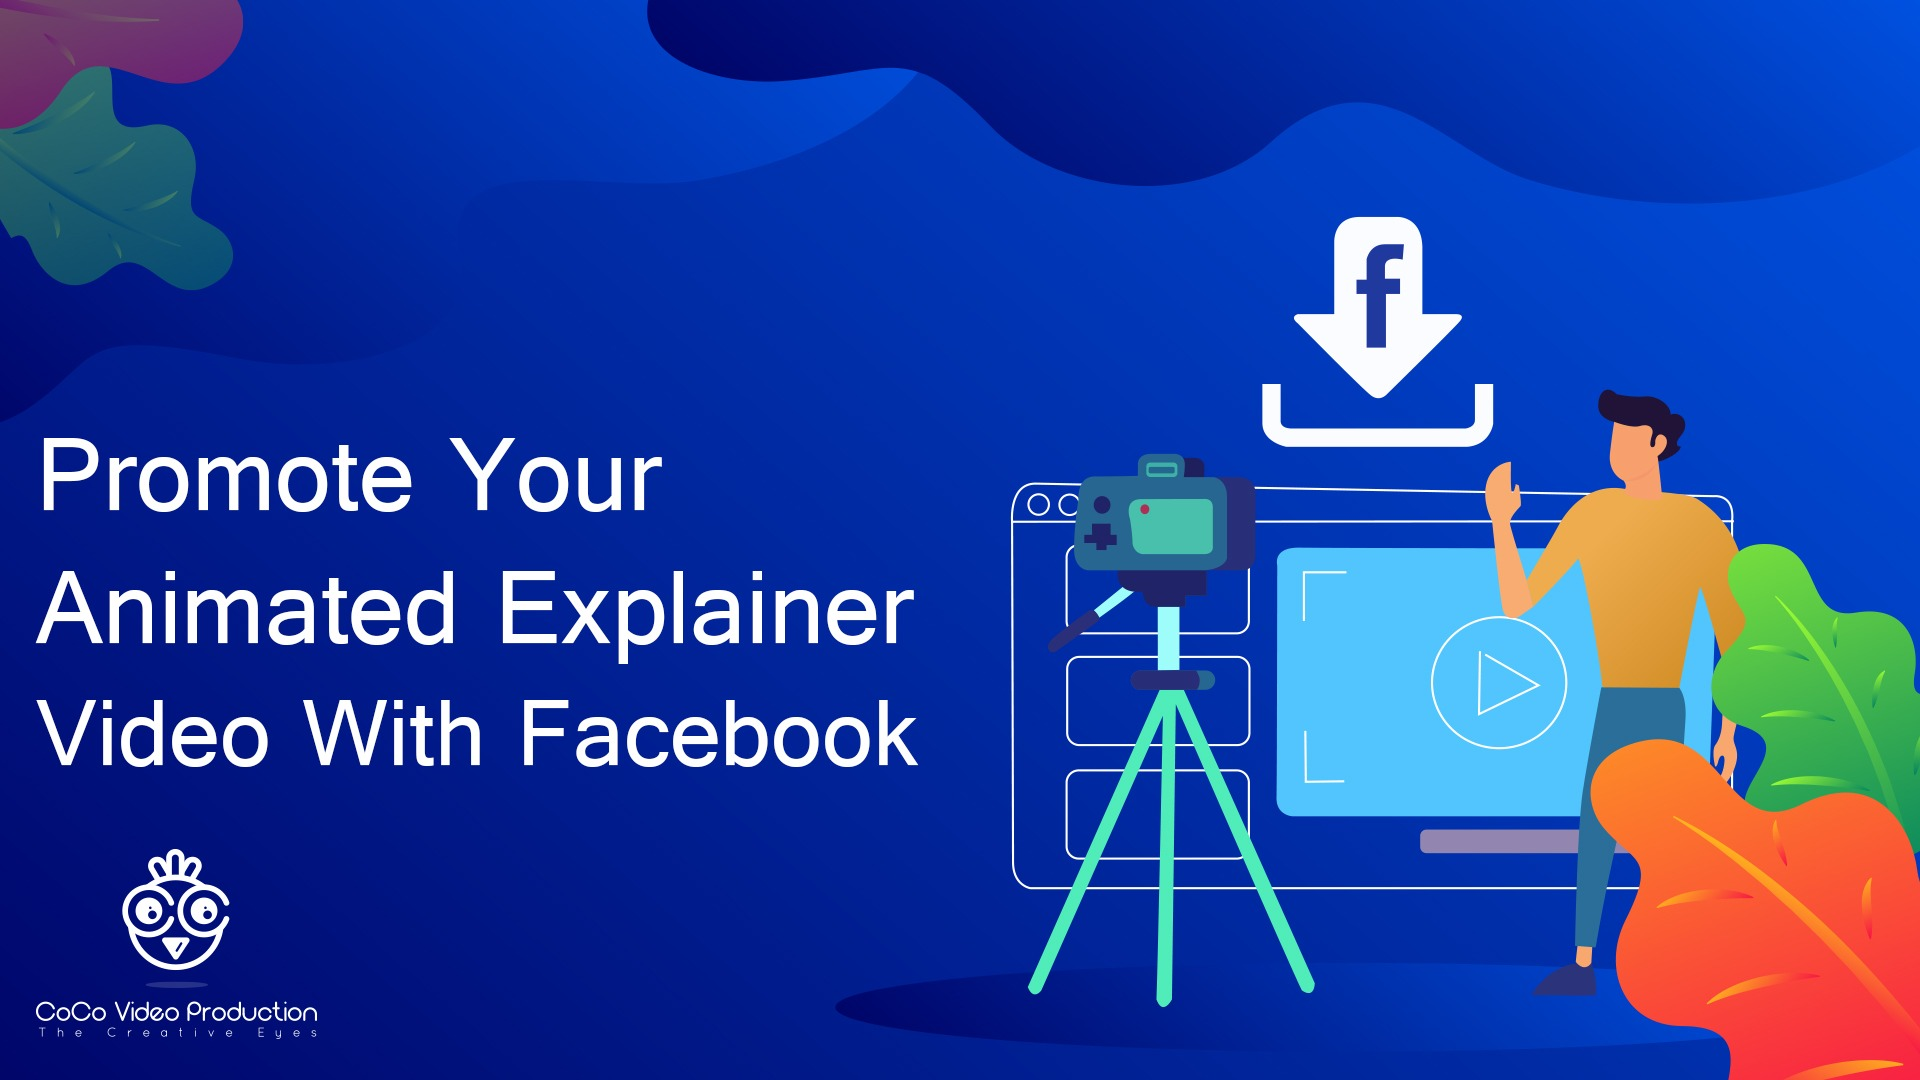 Promote Your Animated Explainer Video With Facebook